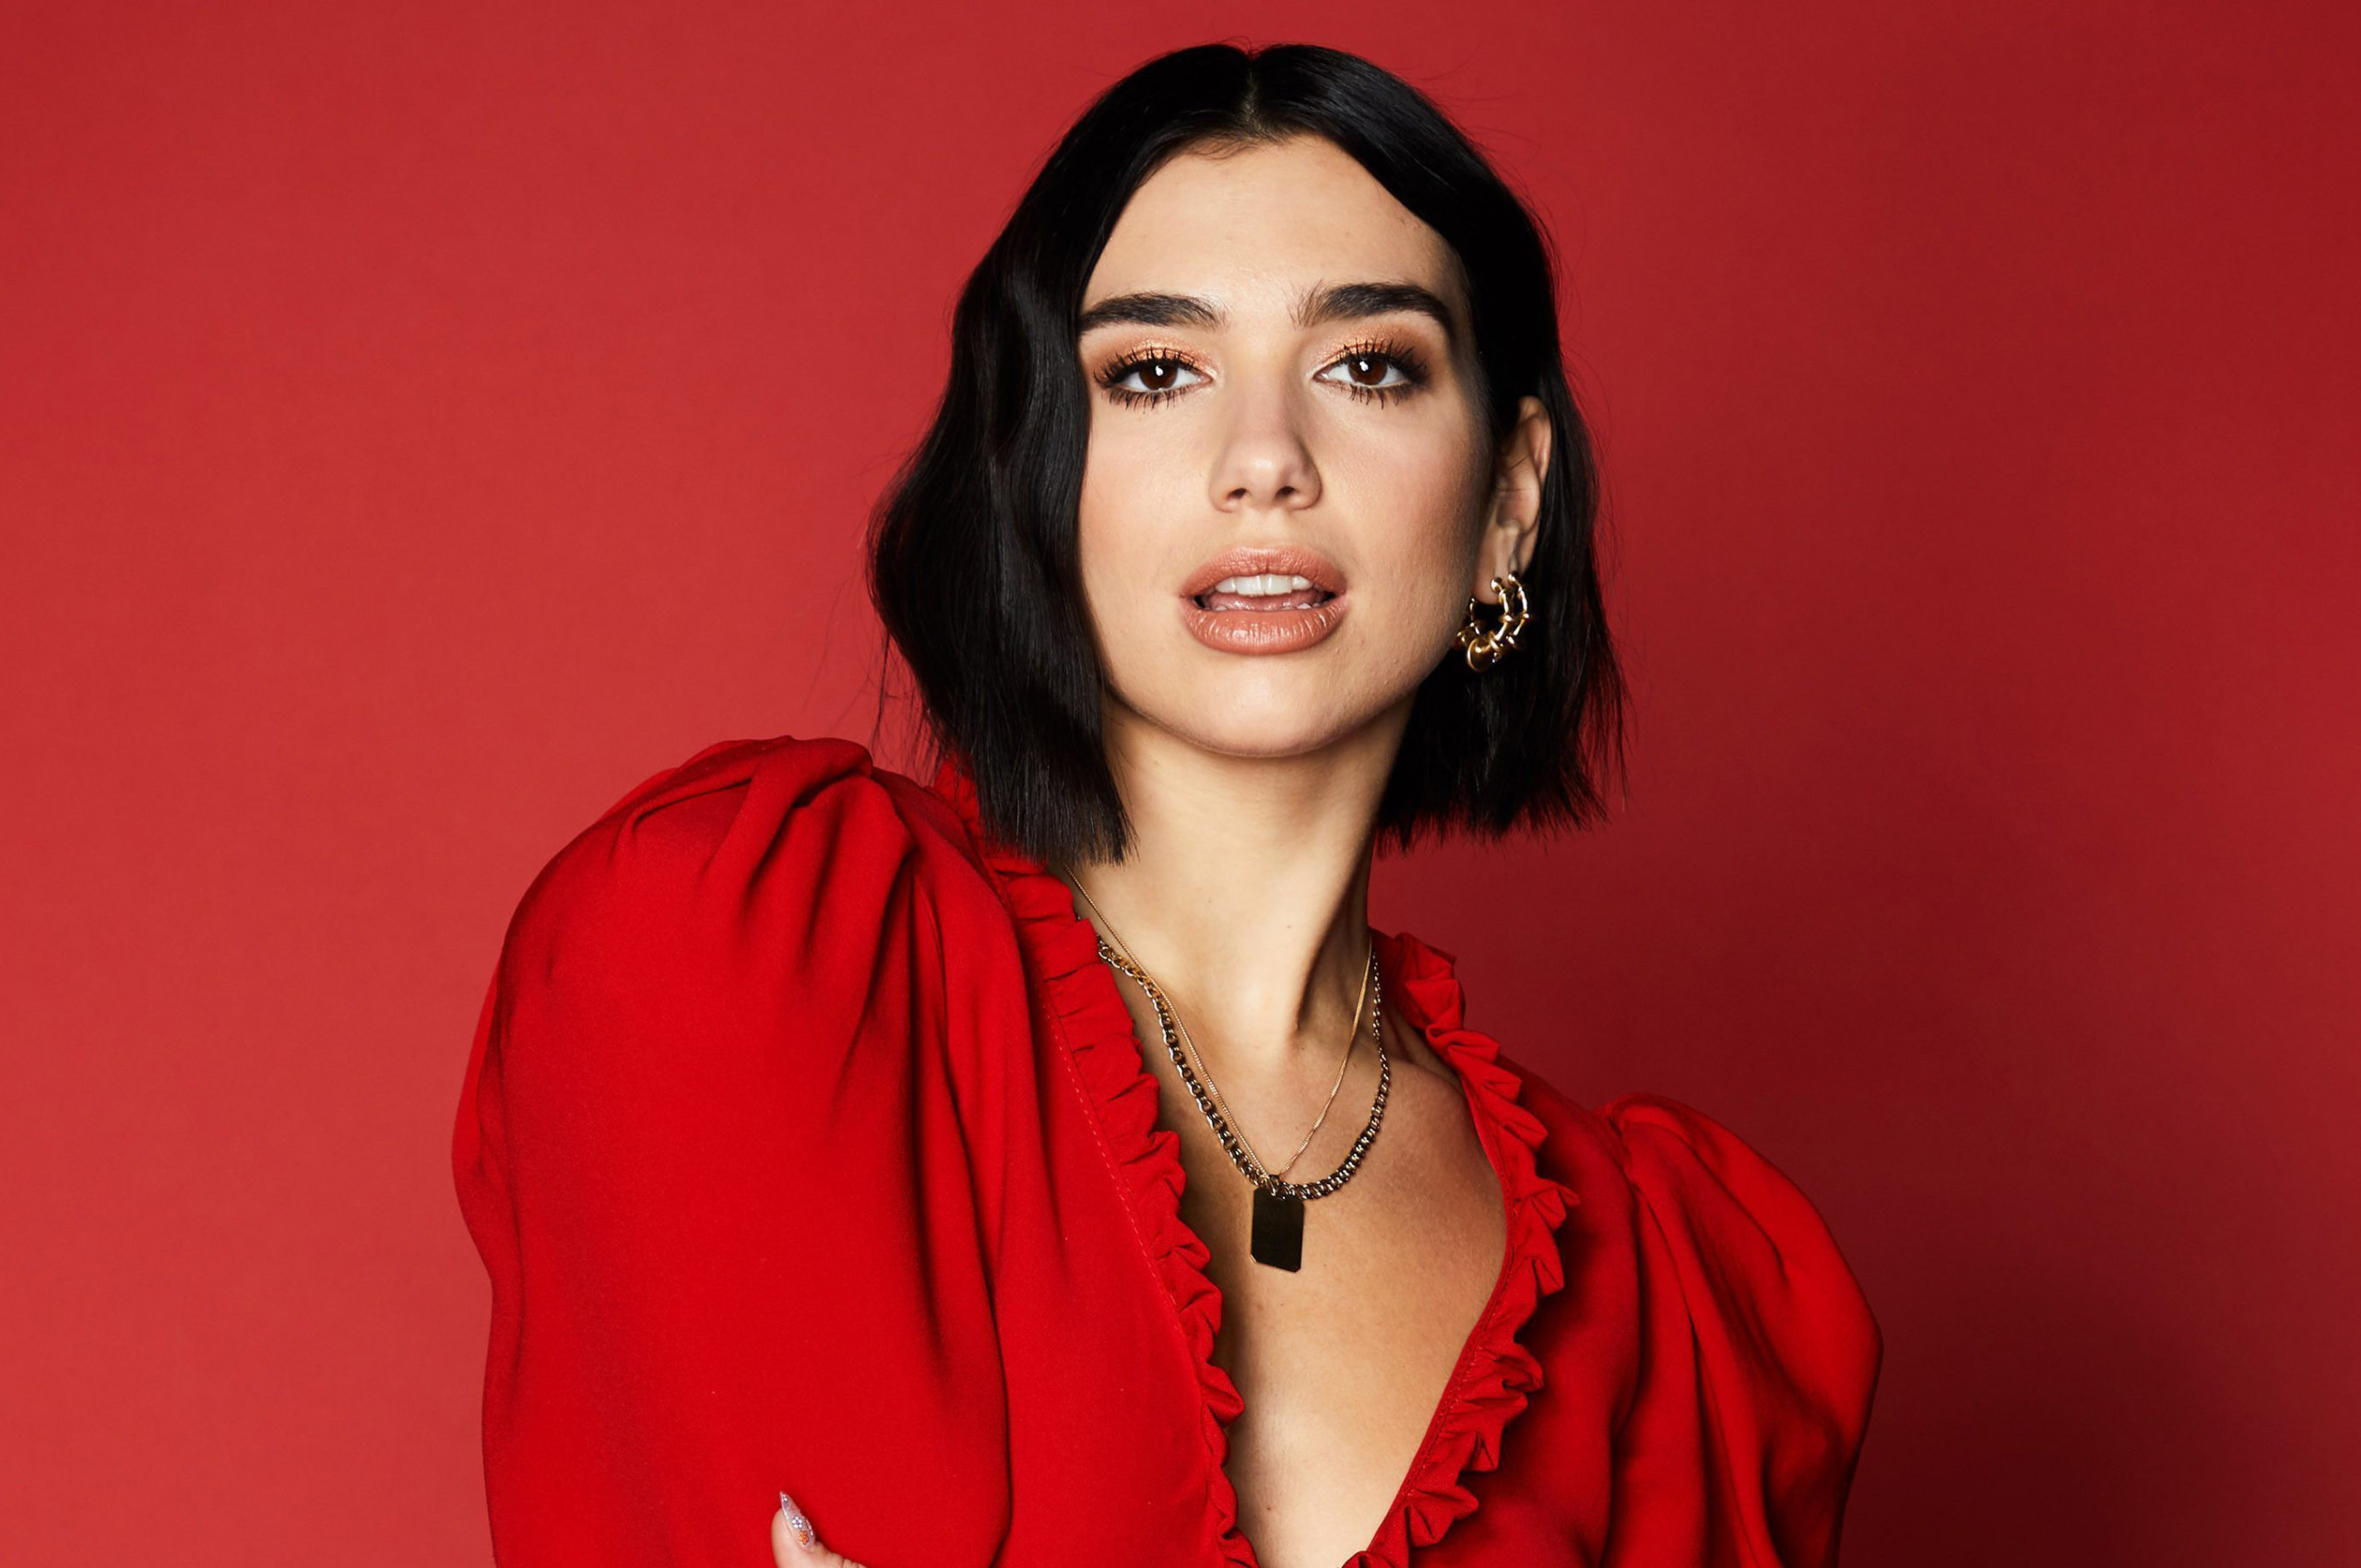 Deejay Turns Bbc News Theme Song Into A Bop With Dua Lipa Remix And It S Gone Viral The Sauce